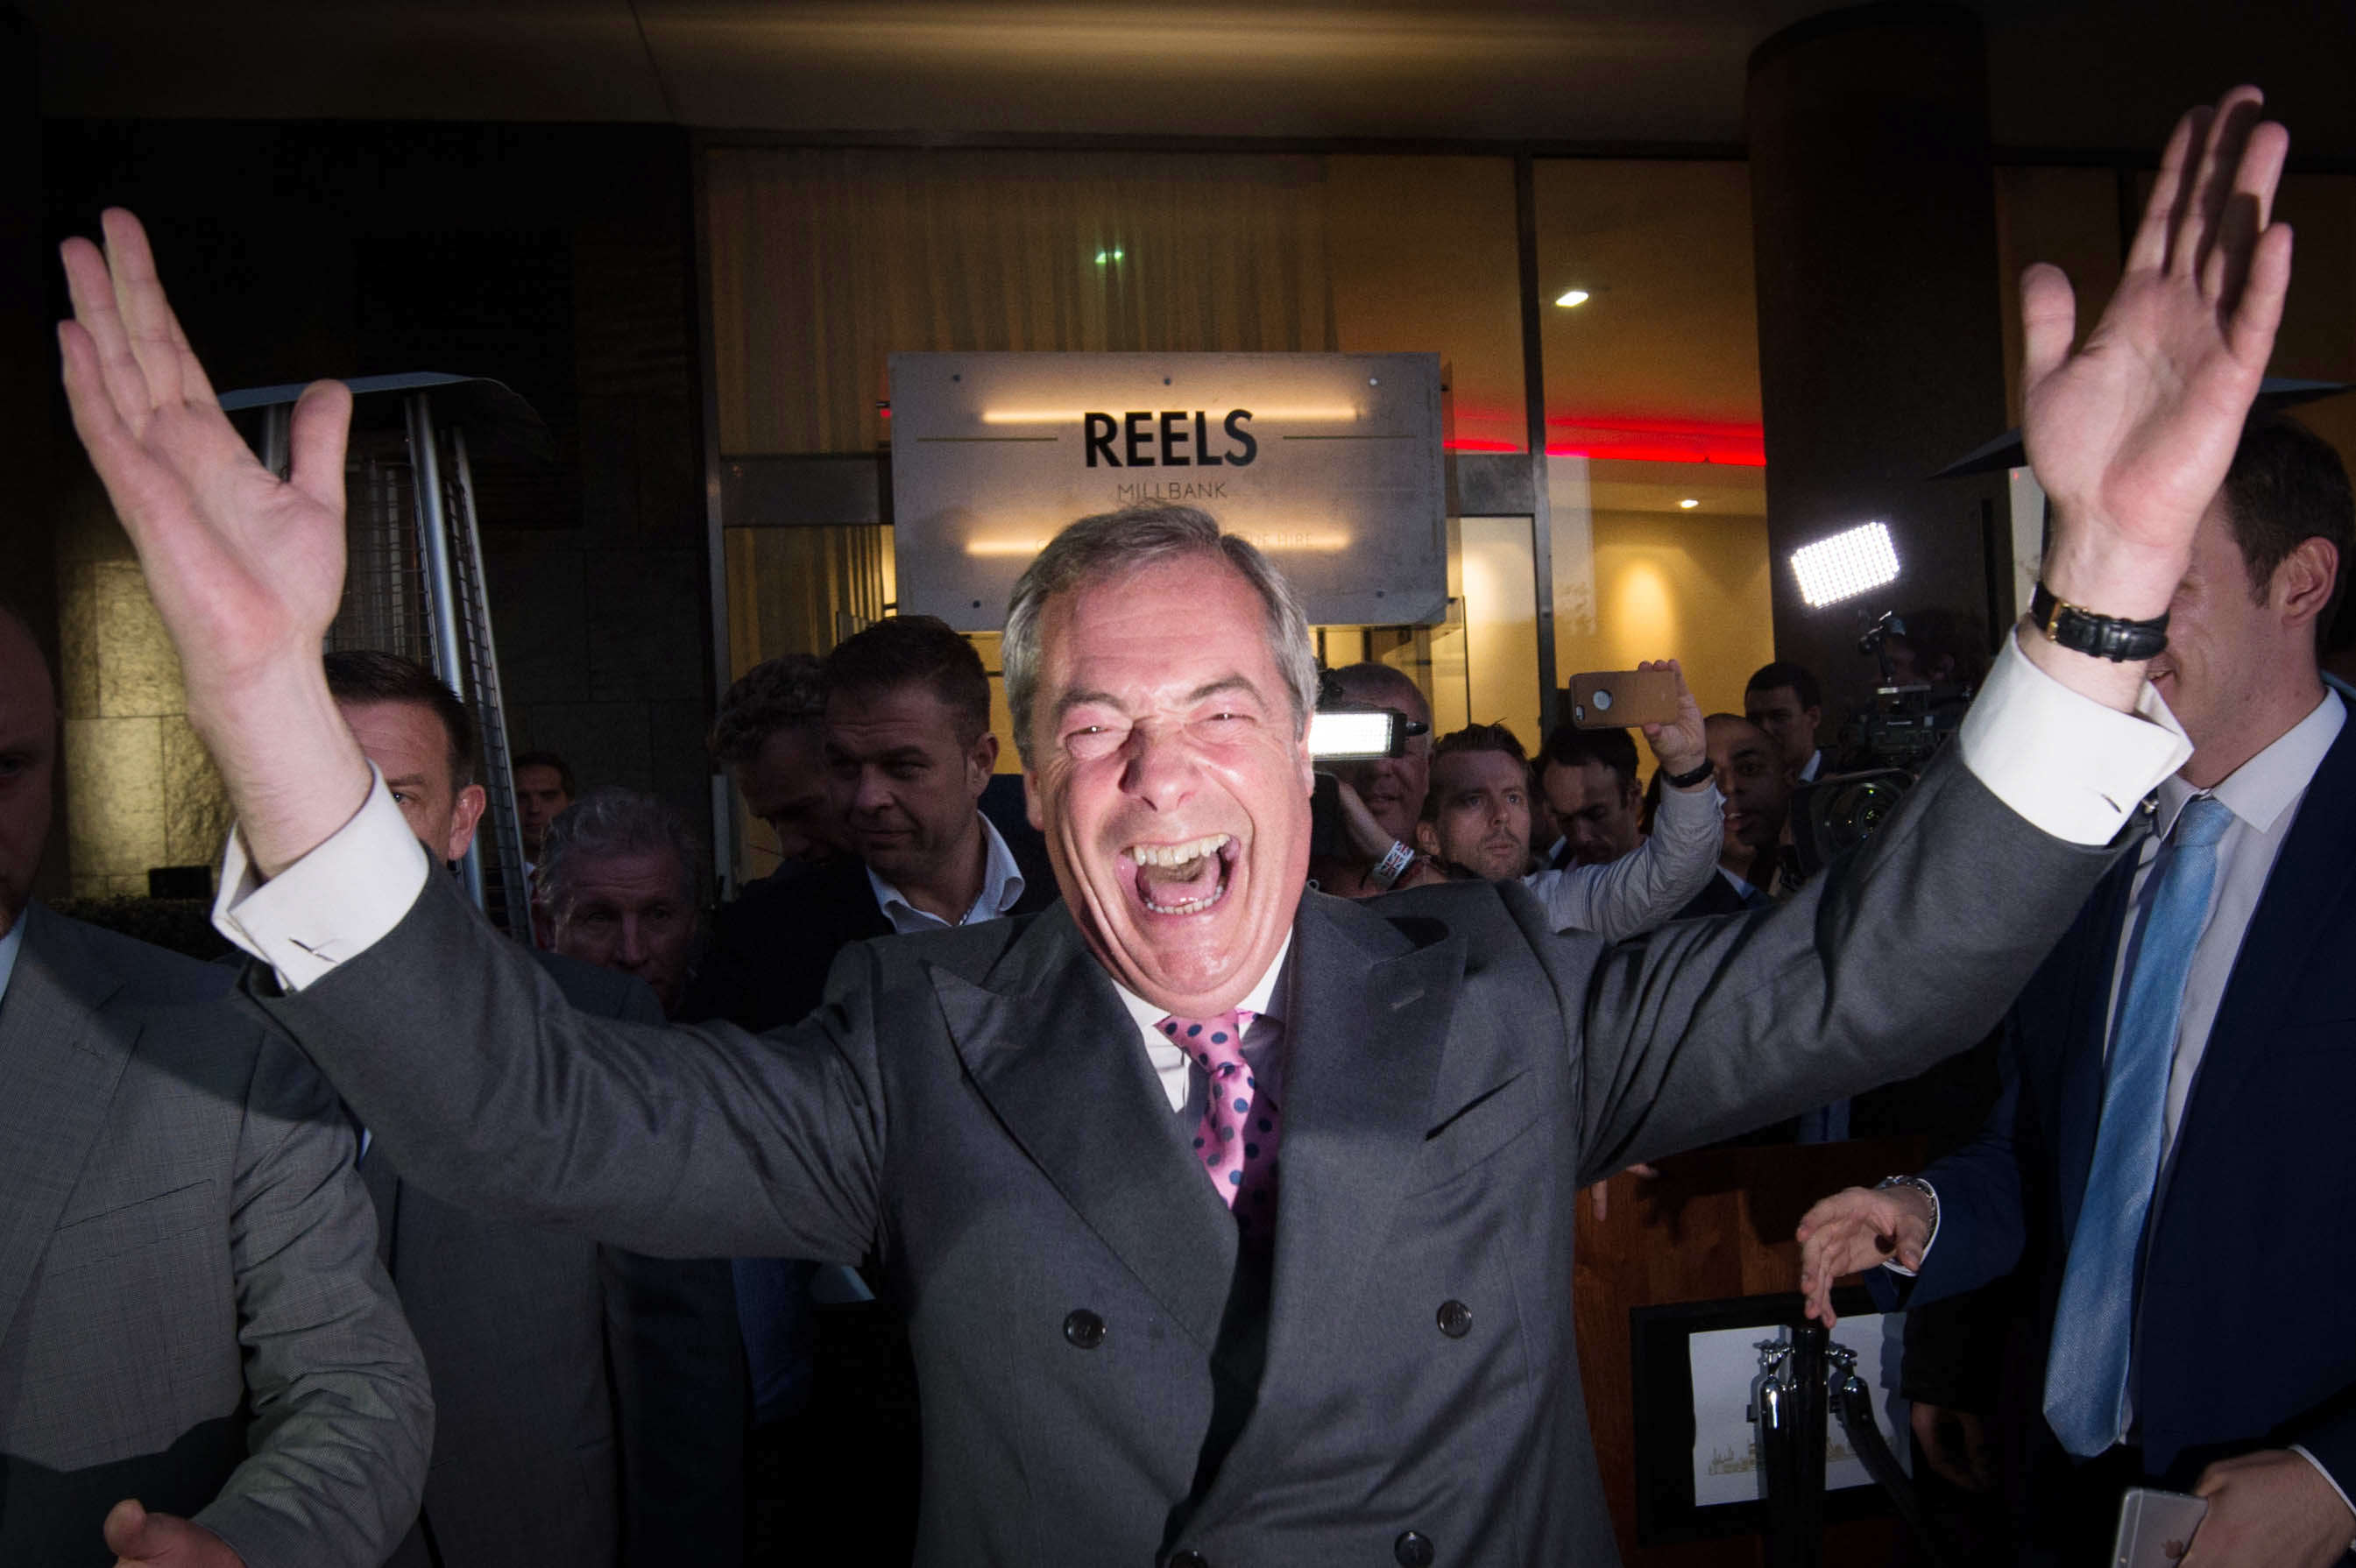 Could Nigel Farage Secretly Be Planning To Join The Tory Party? PA 26697773 1